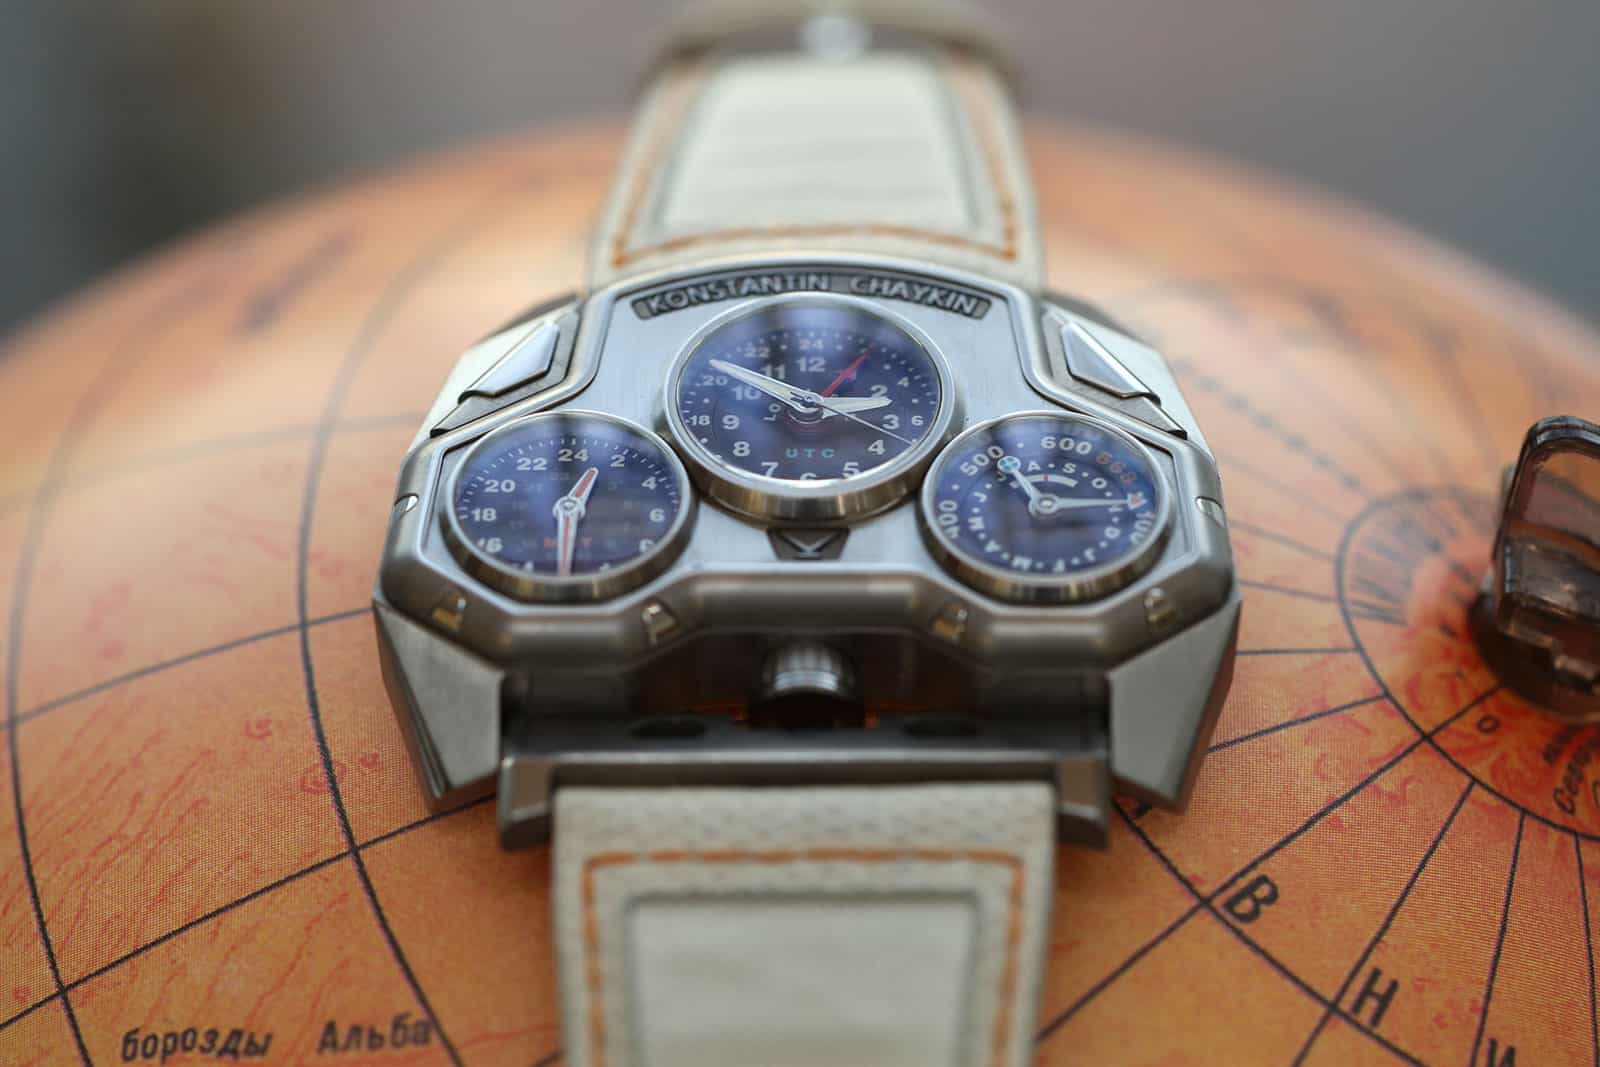 Konstantin Chaykin's Mars Conqueror Shows an Otherworldly Time and Date